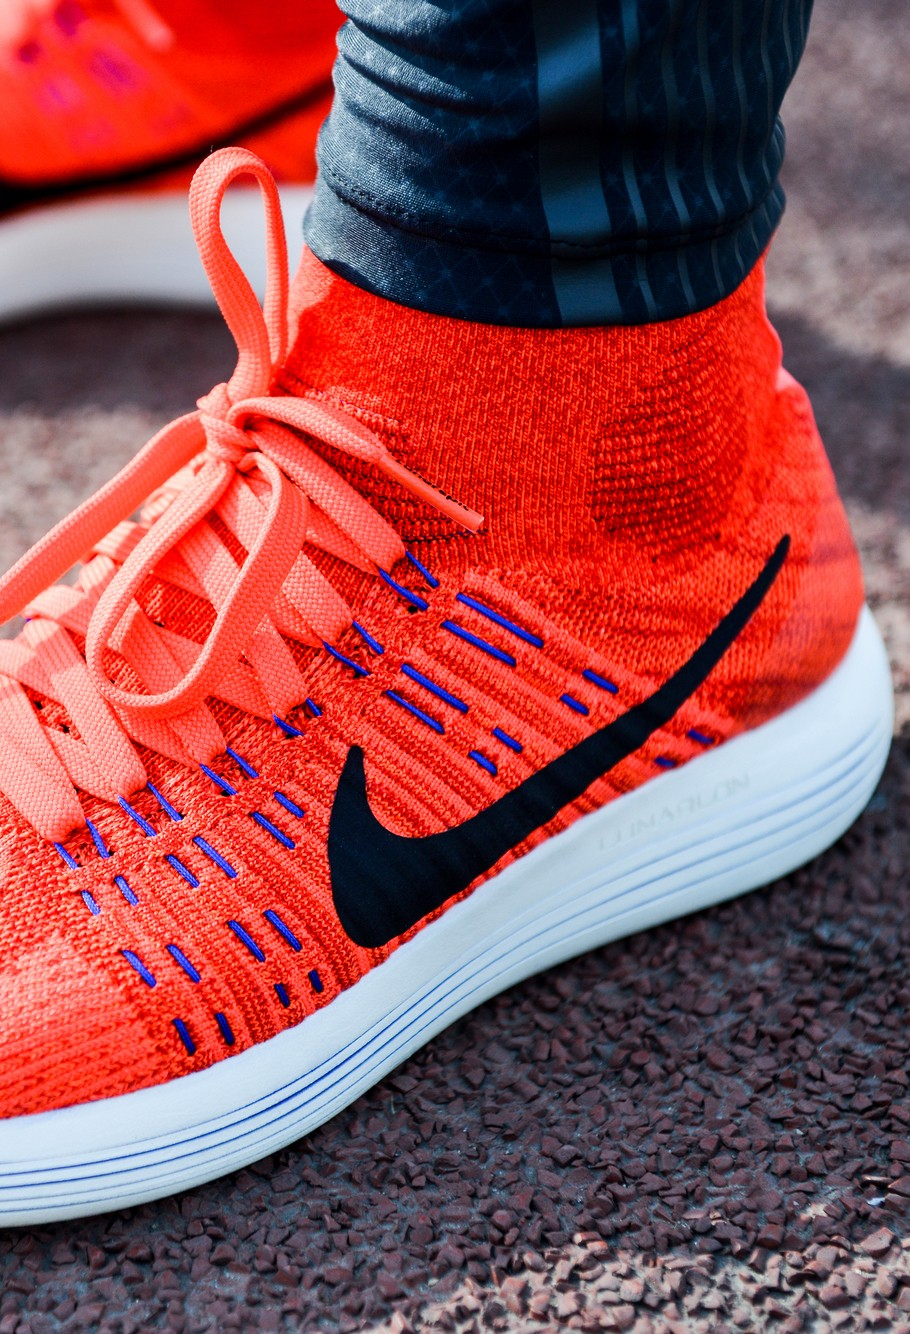 best website 6f561 9c1fa Nike LunarEpic Flyknit with a revolutionary high-top shoes to help design  and new production process for the runners to bring the ultimate fit, ...